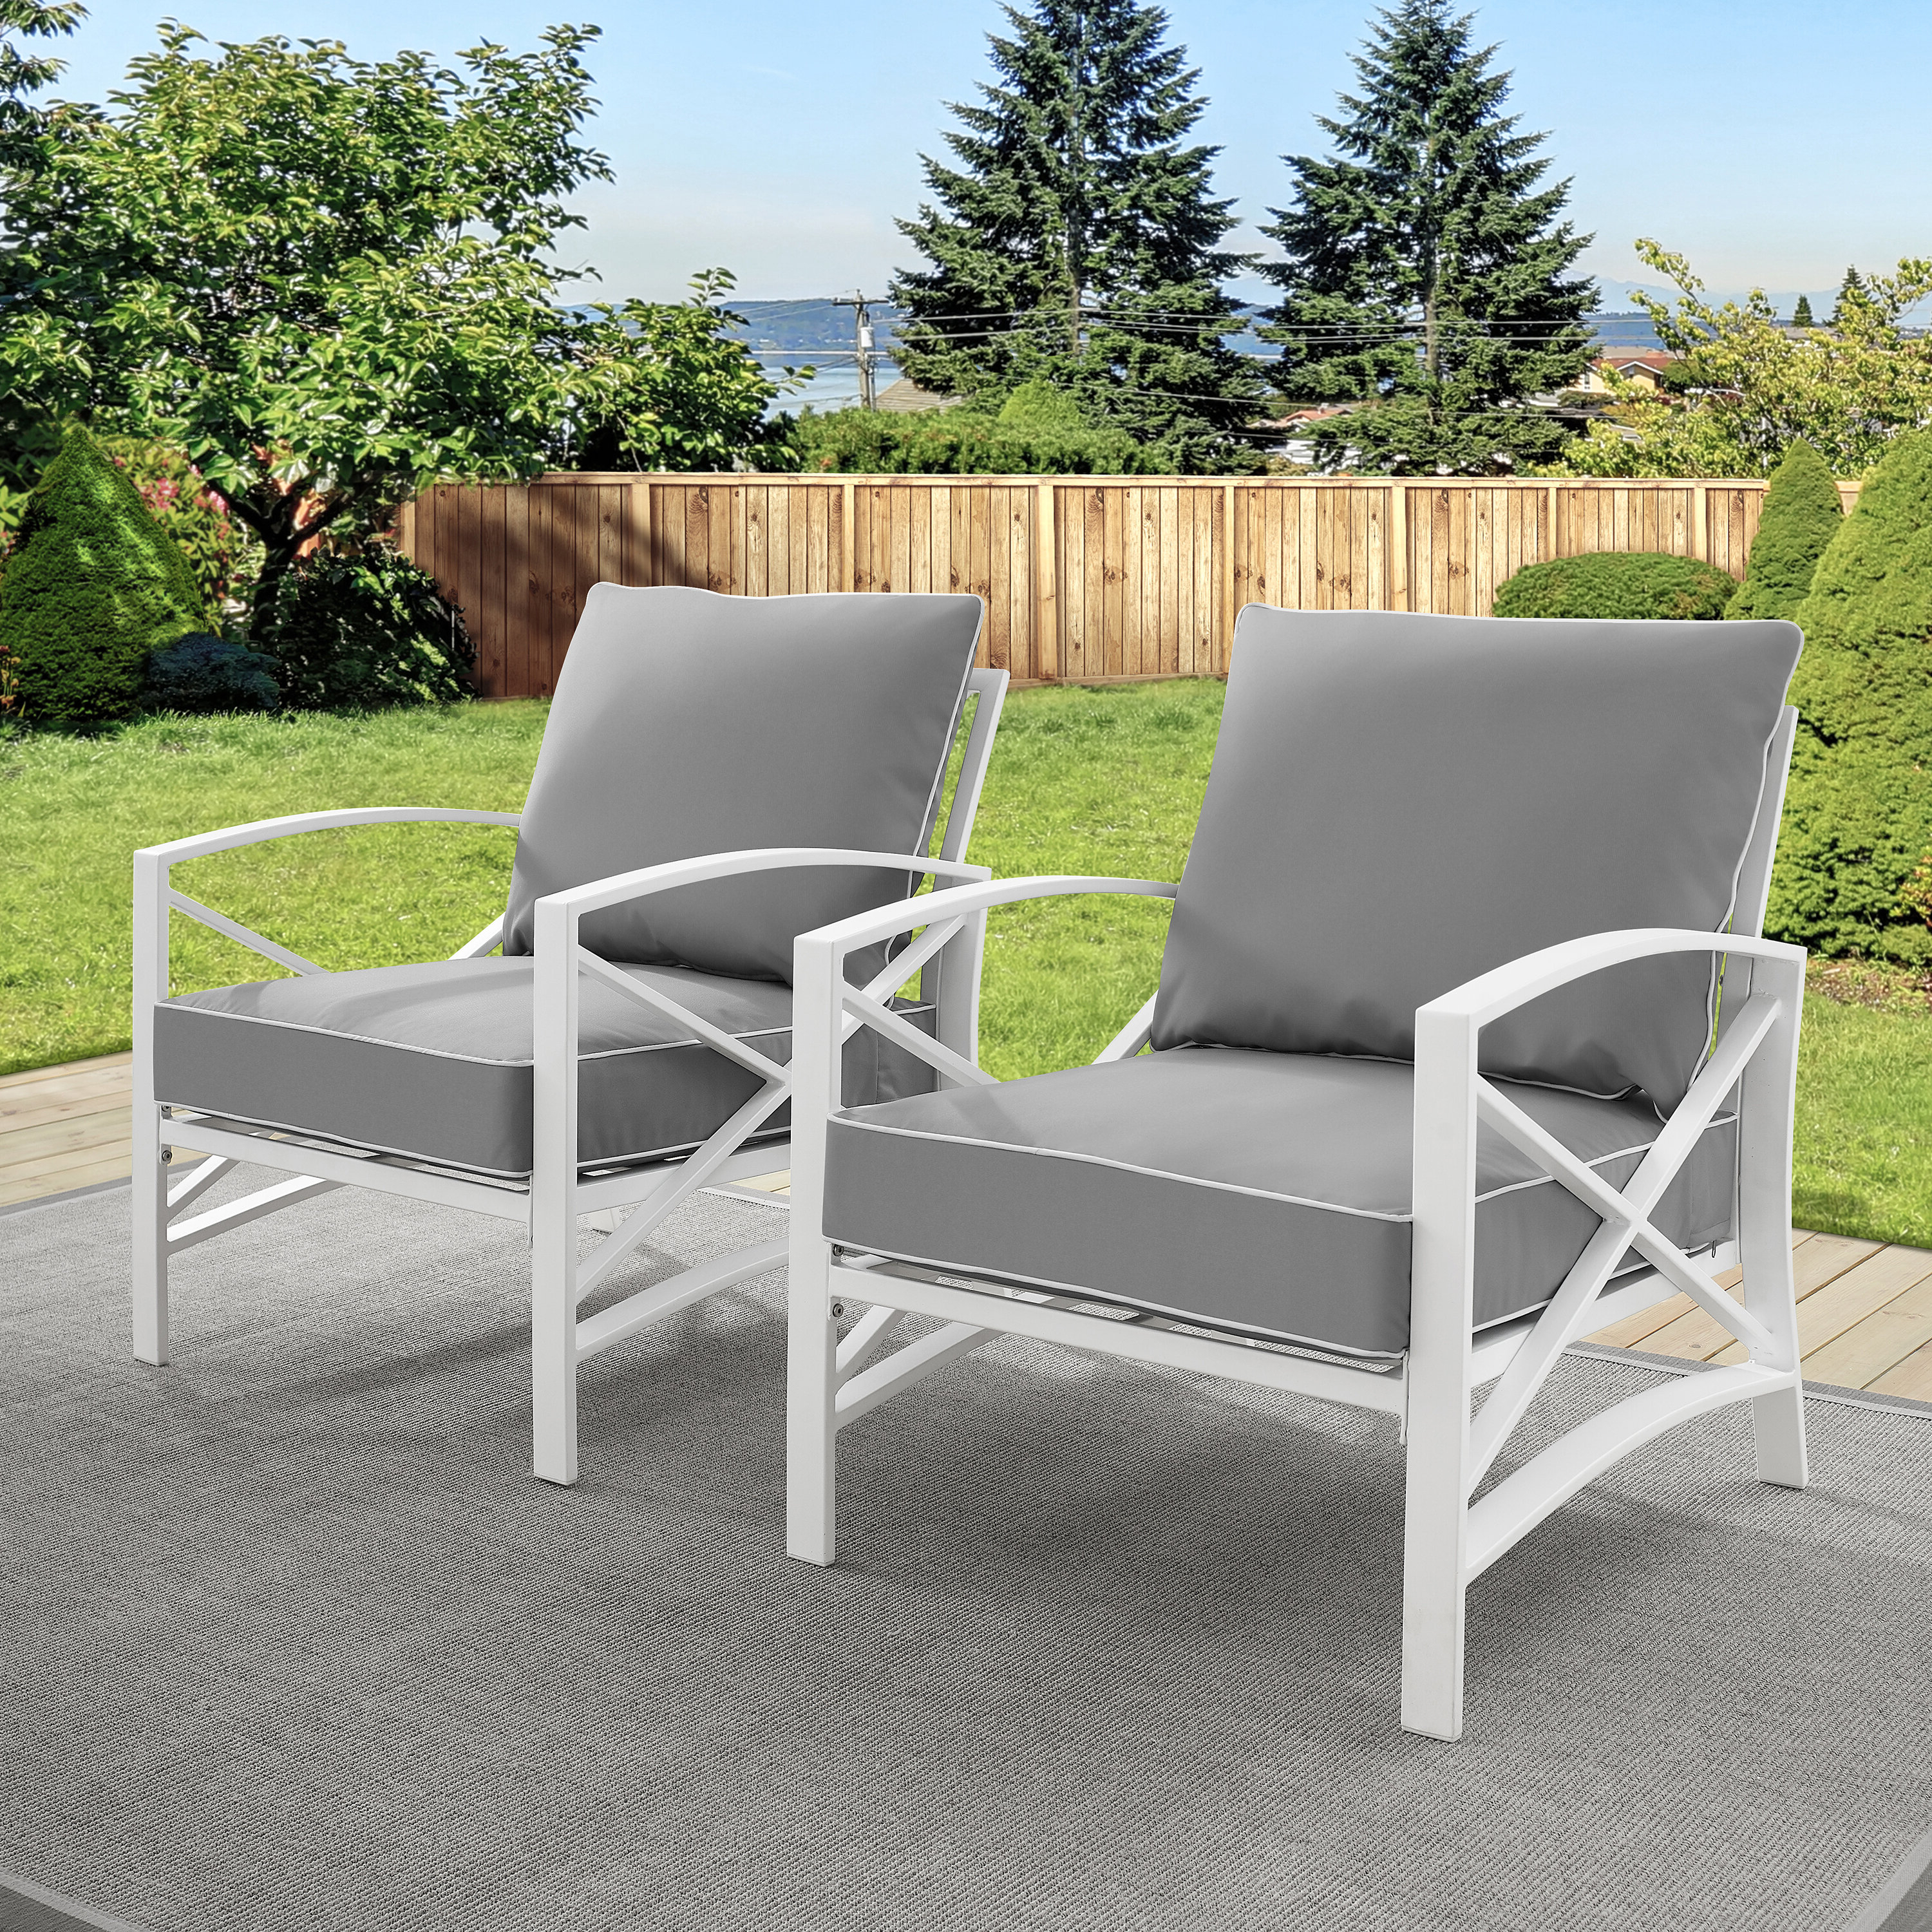 Well Known Baltic Patio Sofas With Cushions In Freitag Patio Chair With Cushions (View 13 of 25)